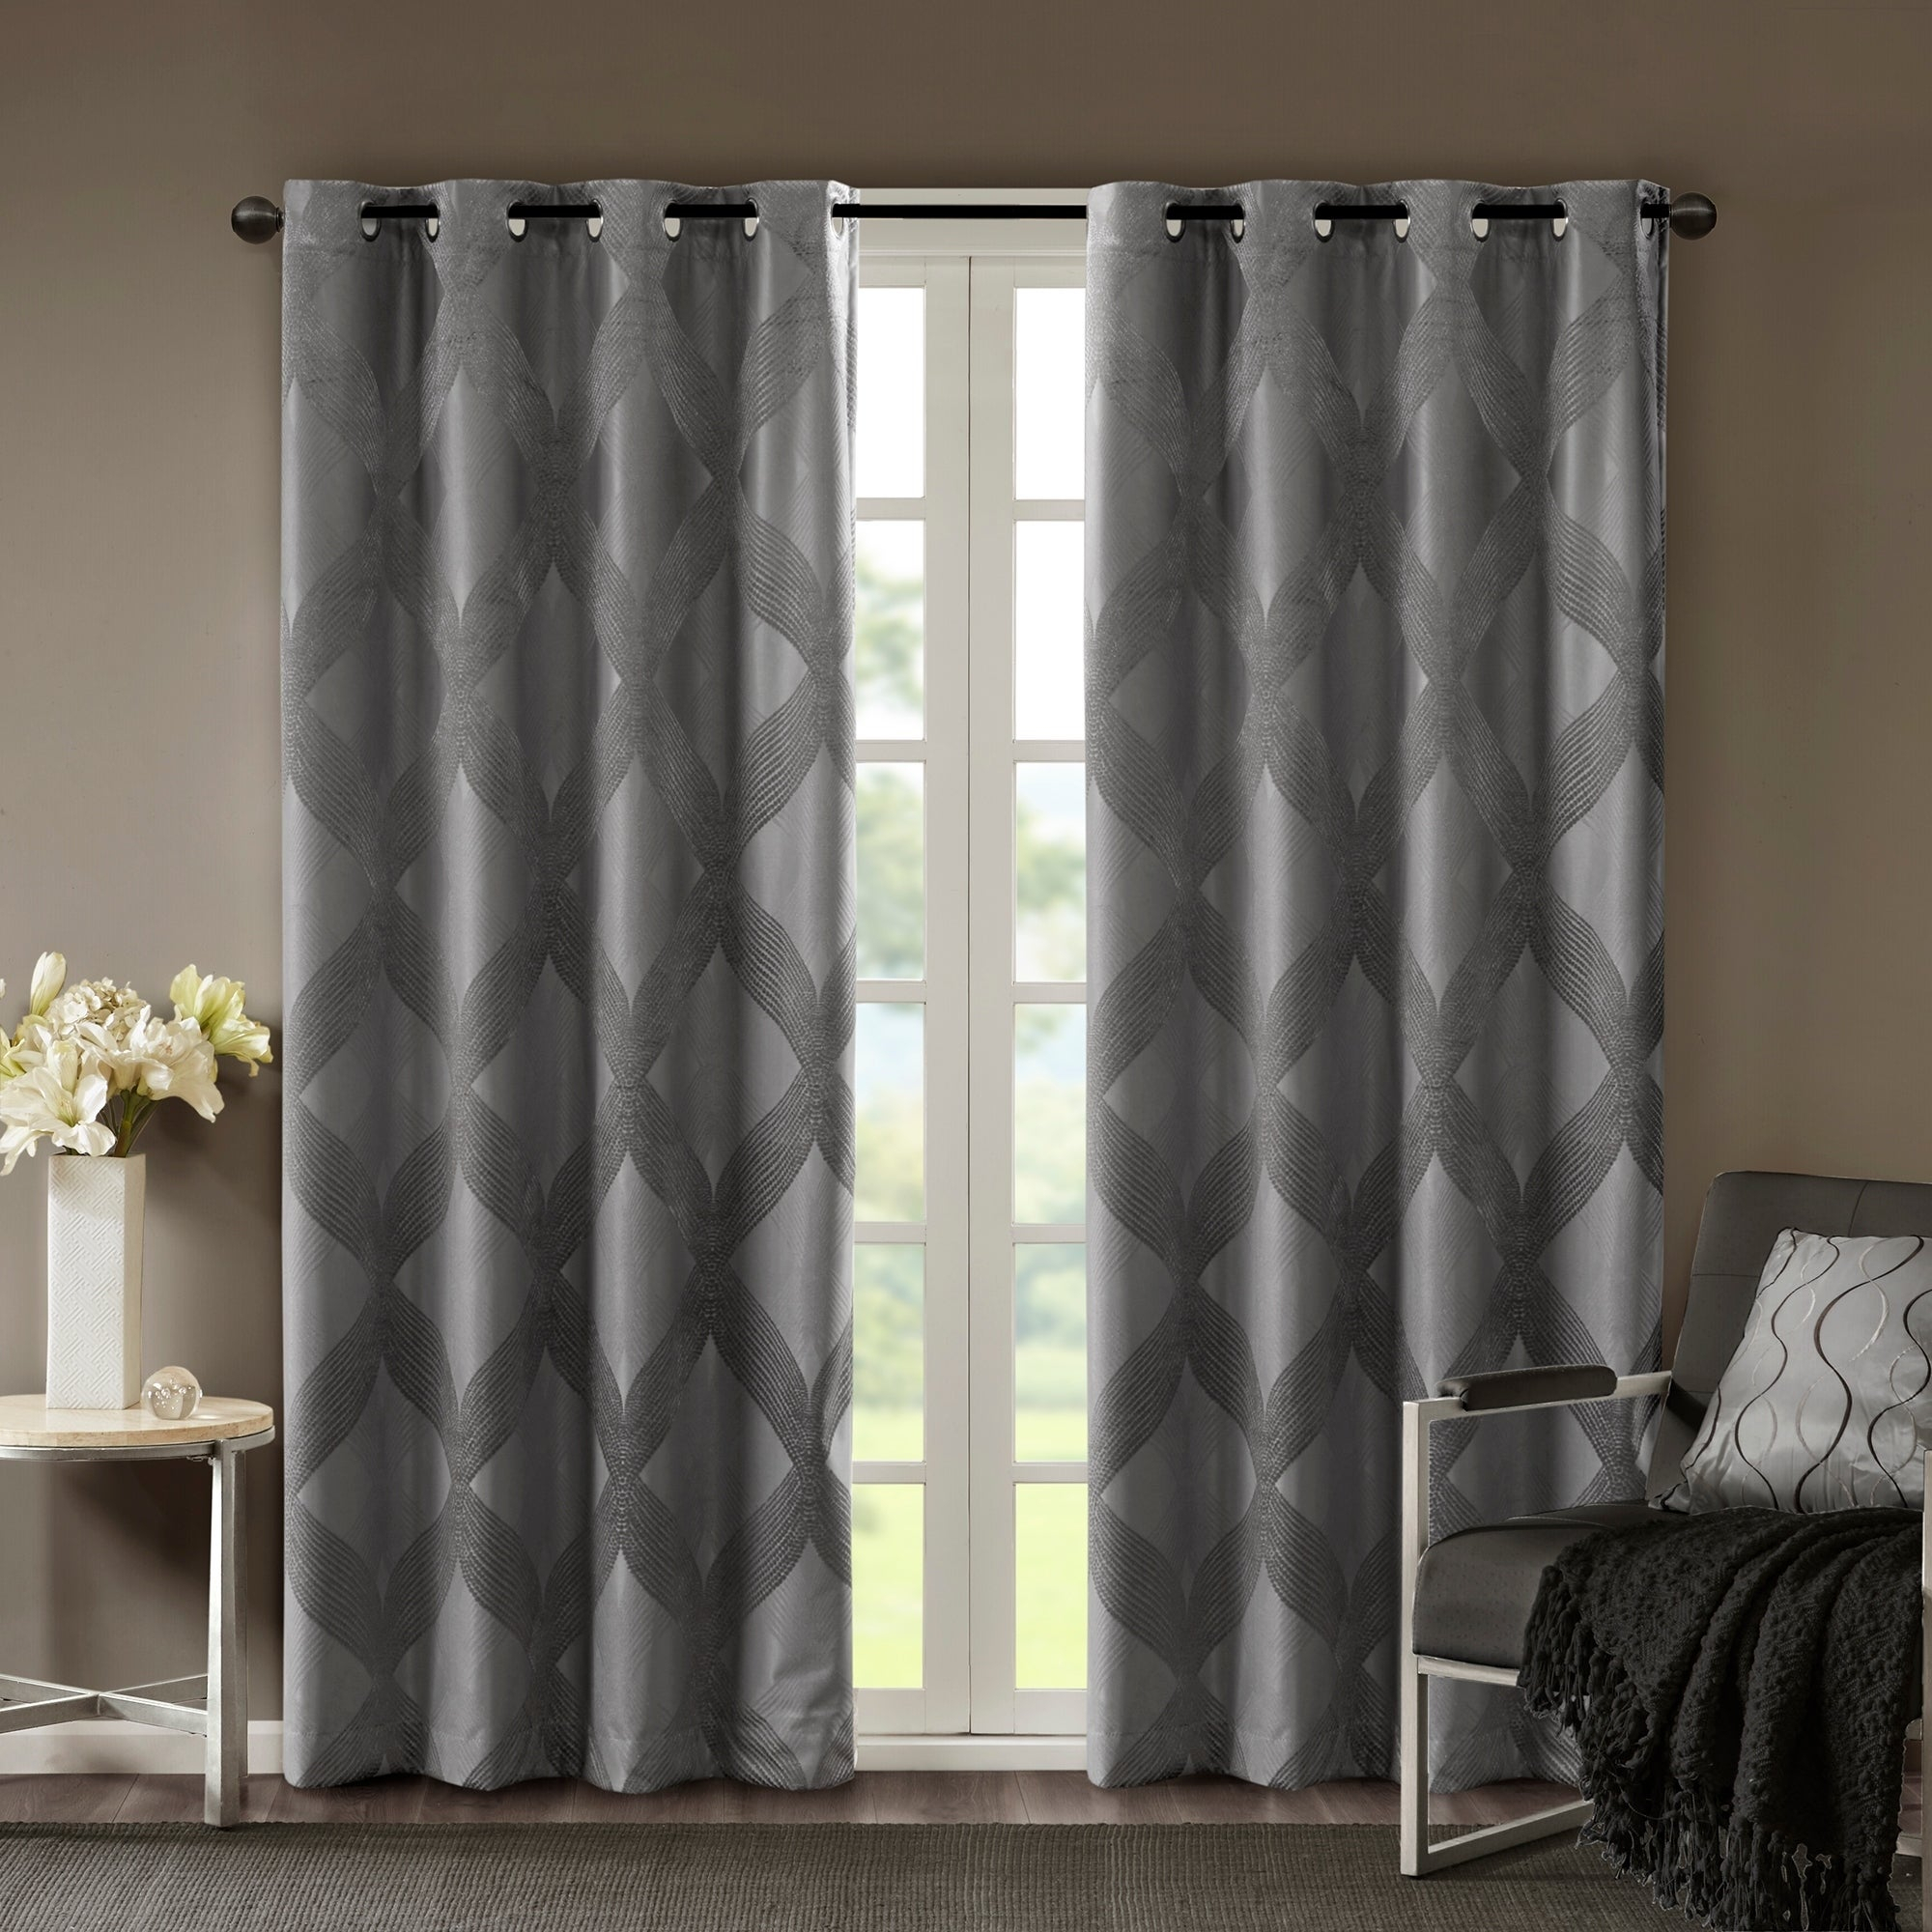 Sunsmart Abel Ogee Knitted Jacquard Total Blackout Curtain Panel With Regard To Sunsmart Abel Ogee Knitted Jacquard Total Blackout Curtain Panels (View 19 of 30)